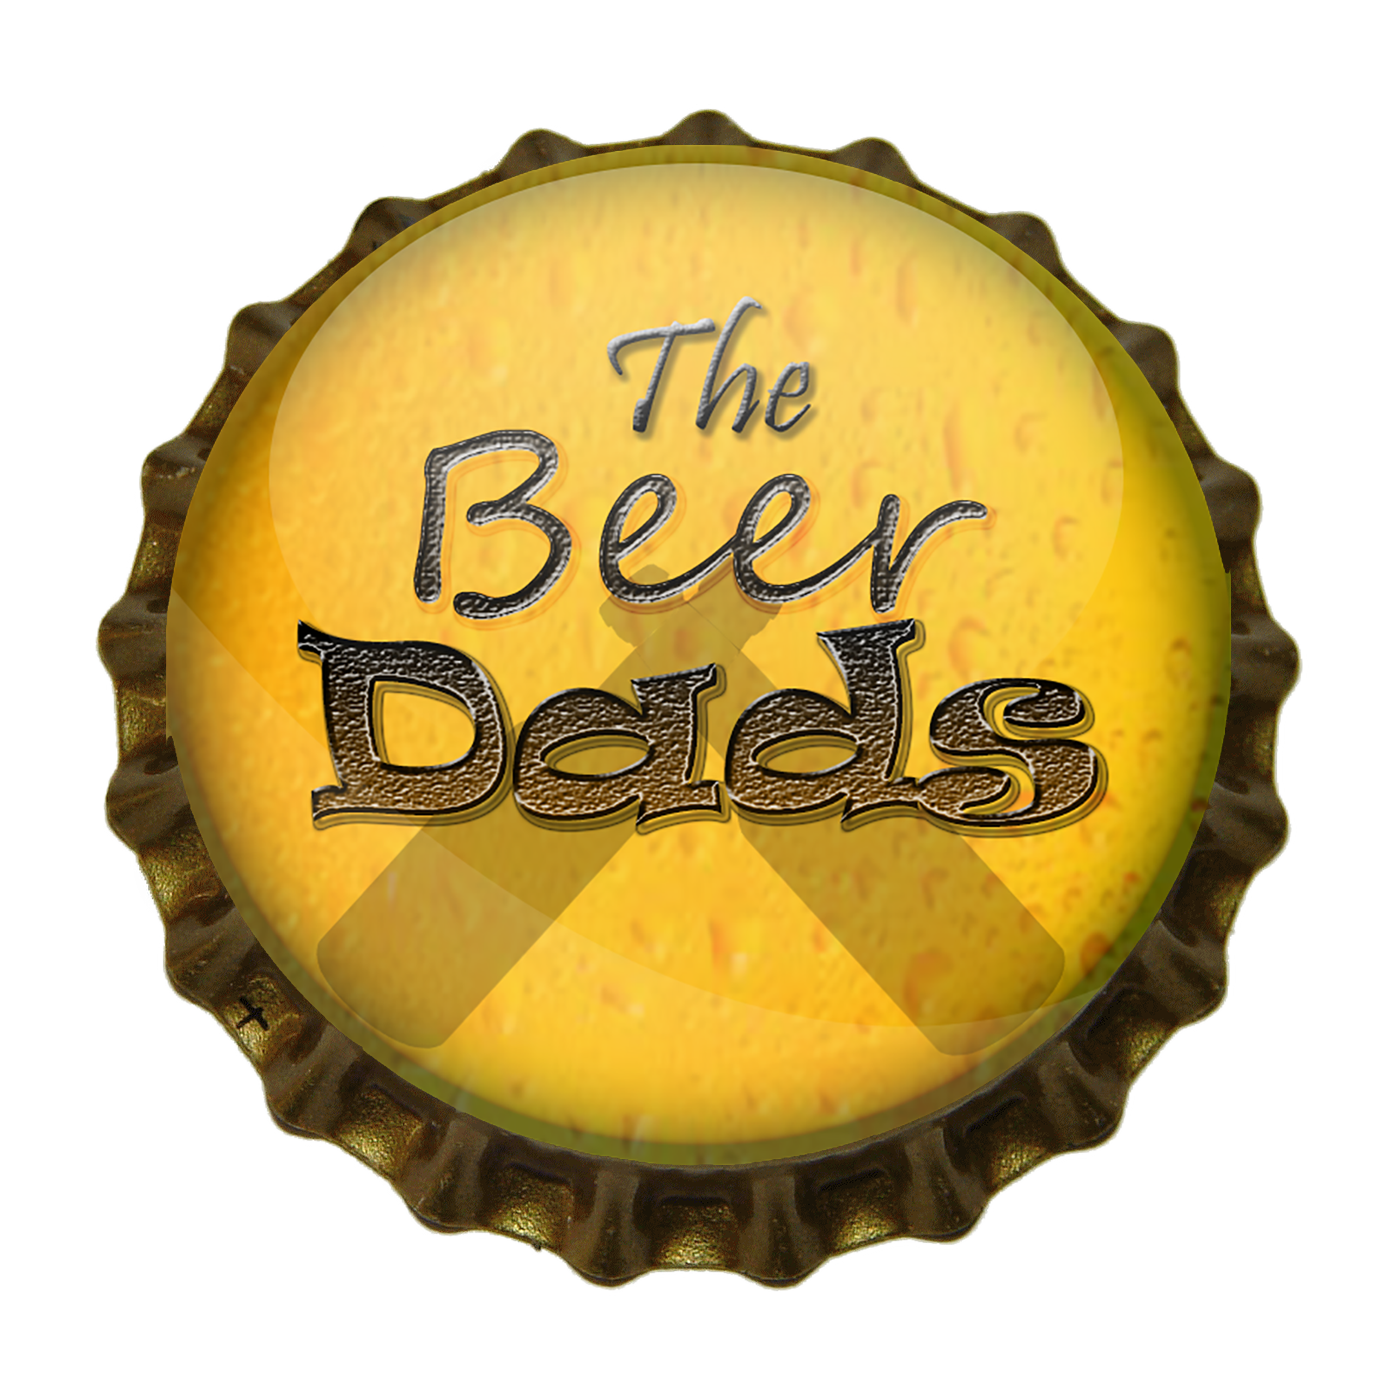 thebeerdads.png